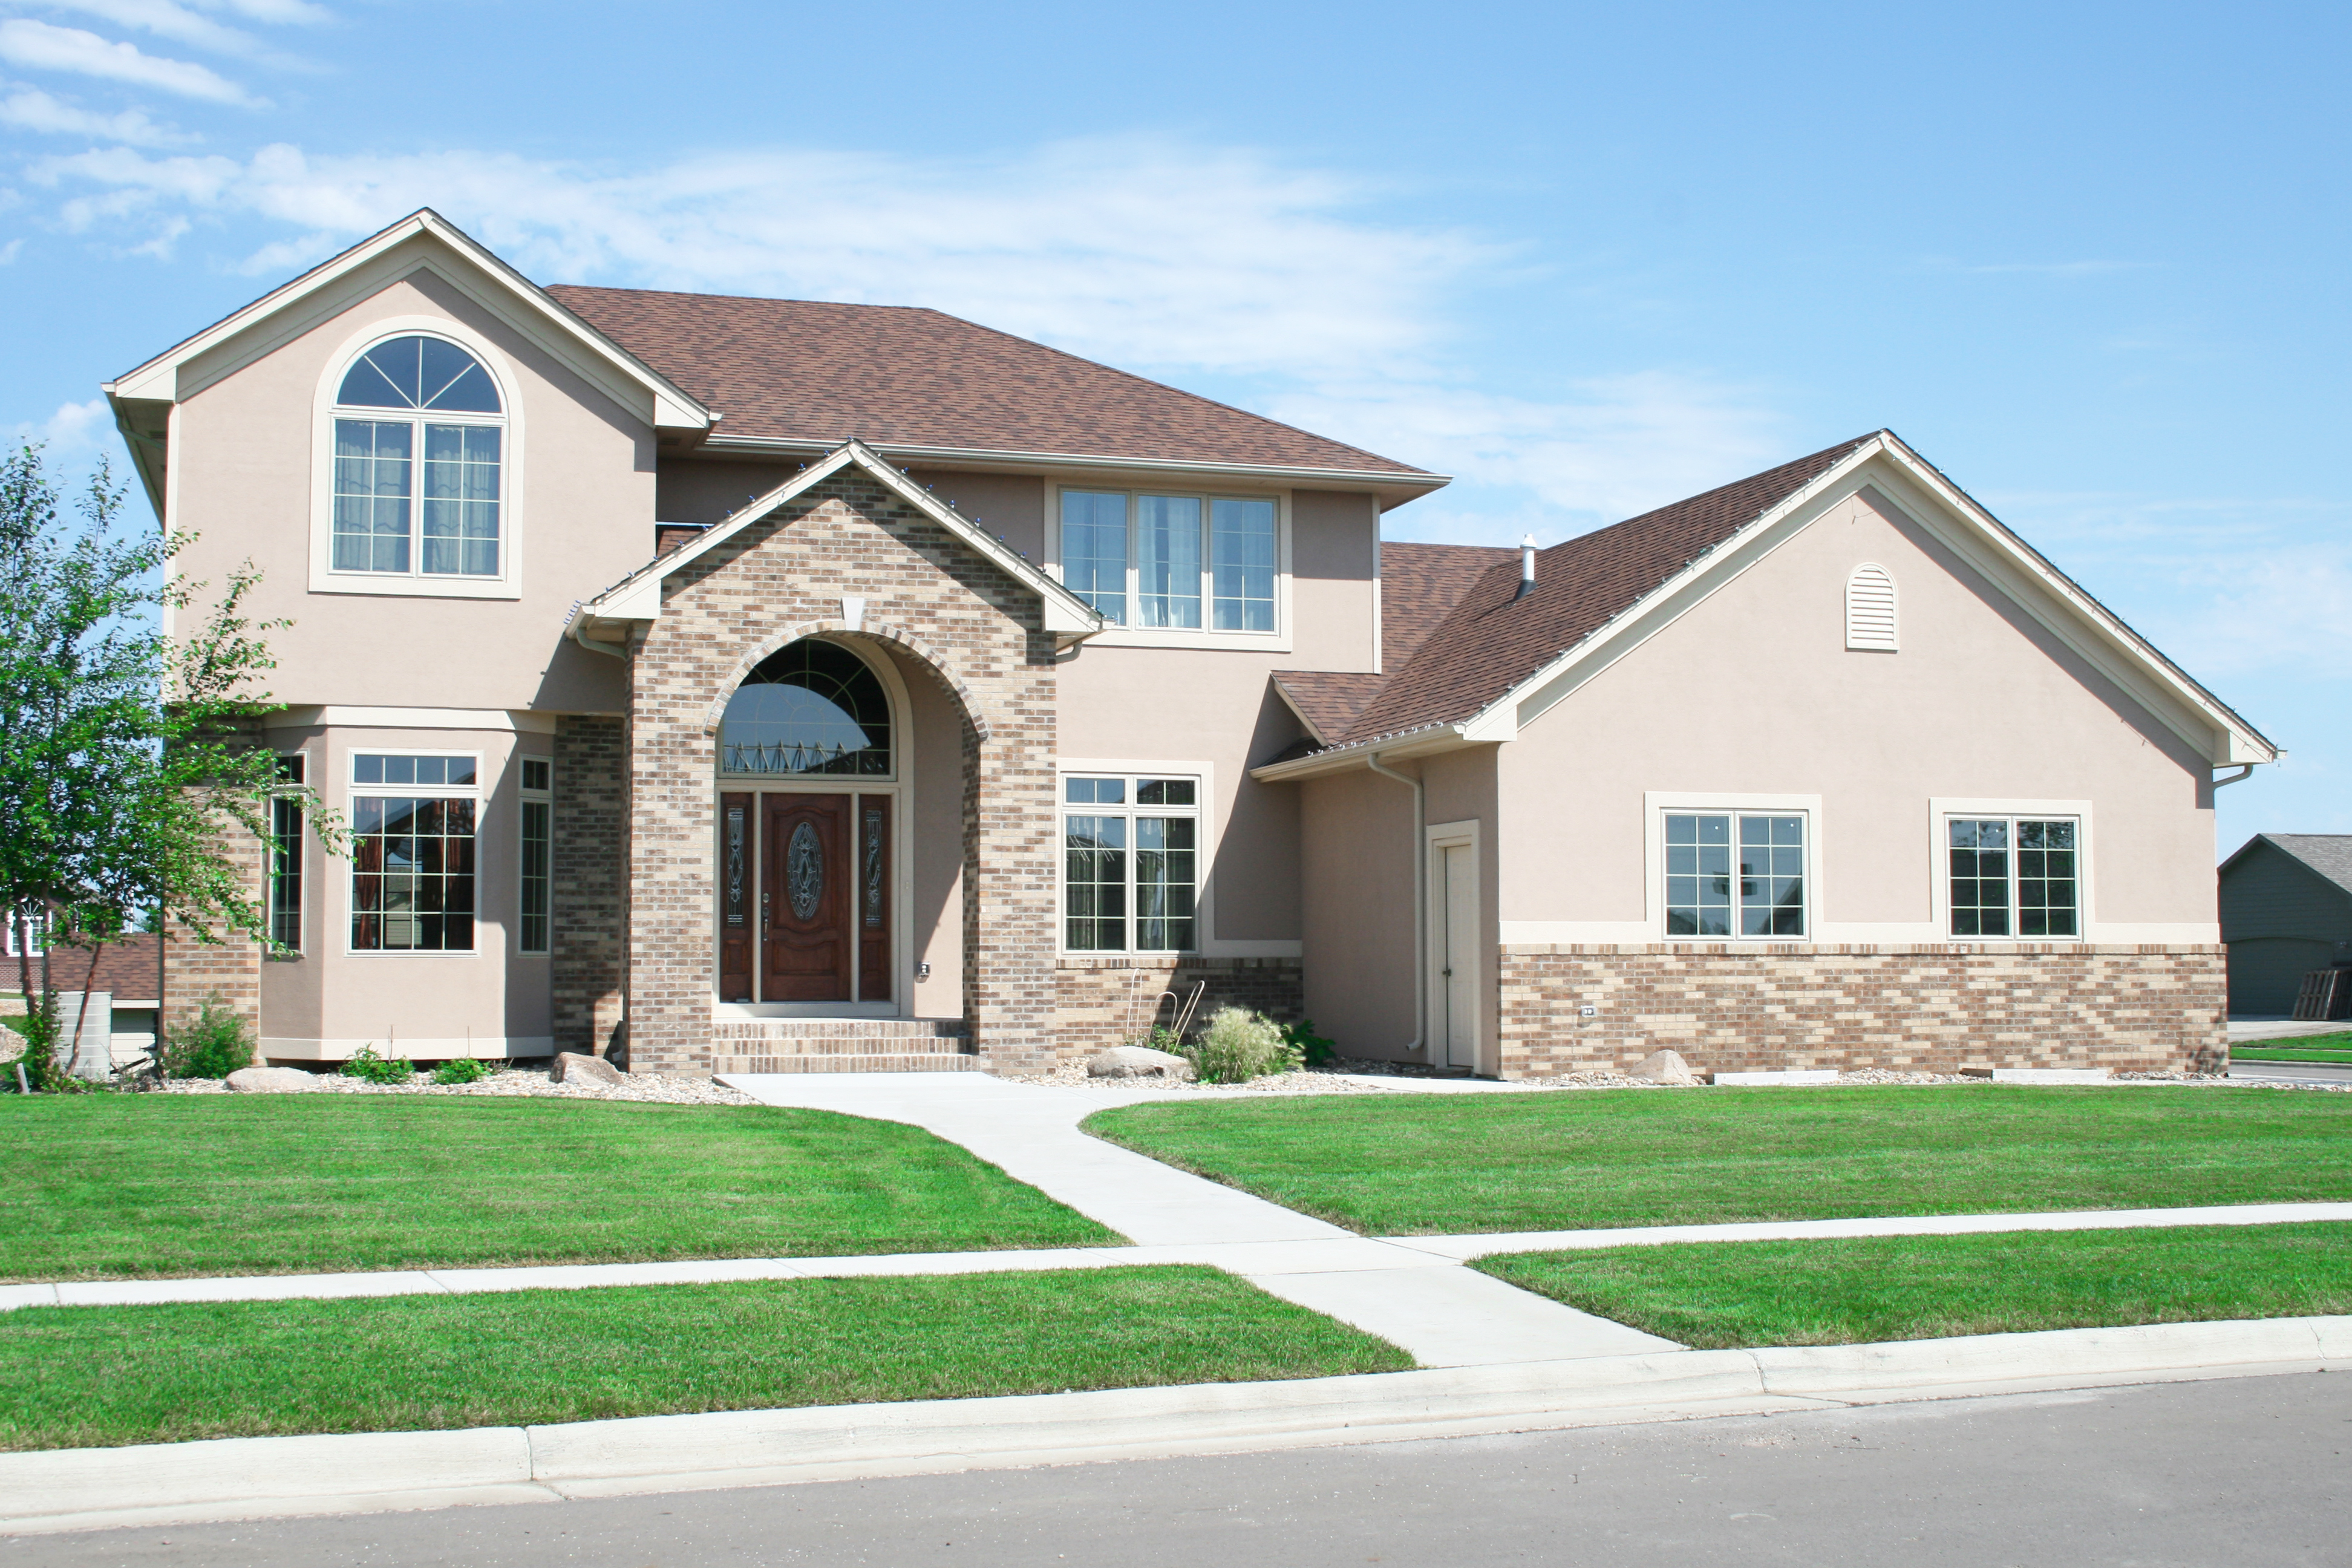 Superb Mixed Exterior Styles American Ebuilder Largest Home Design Picture Inspirations Pitcheantrous